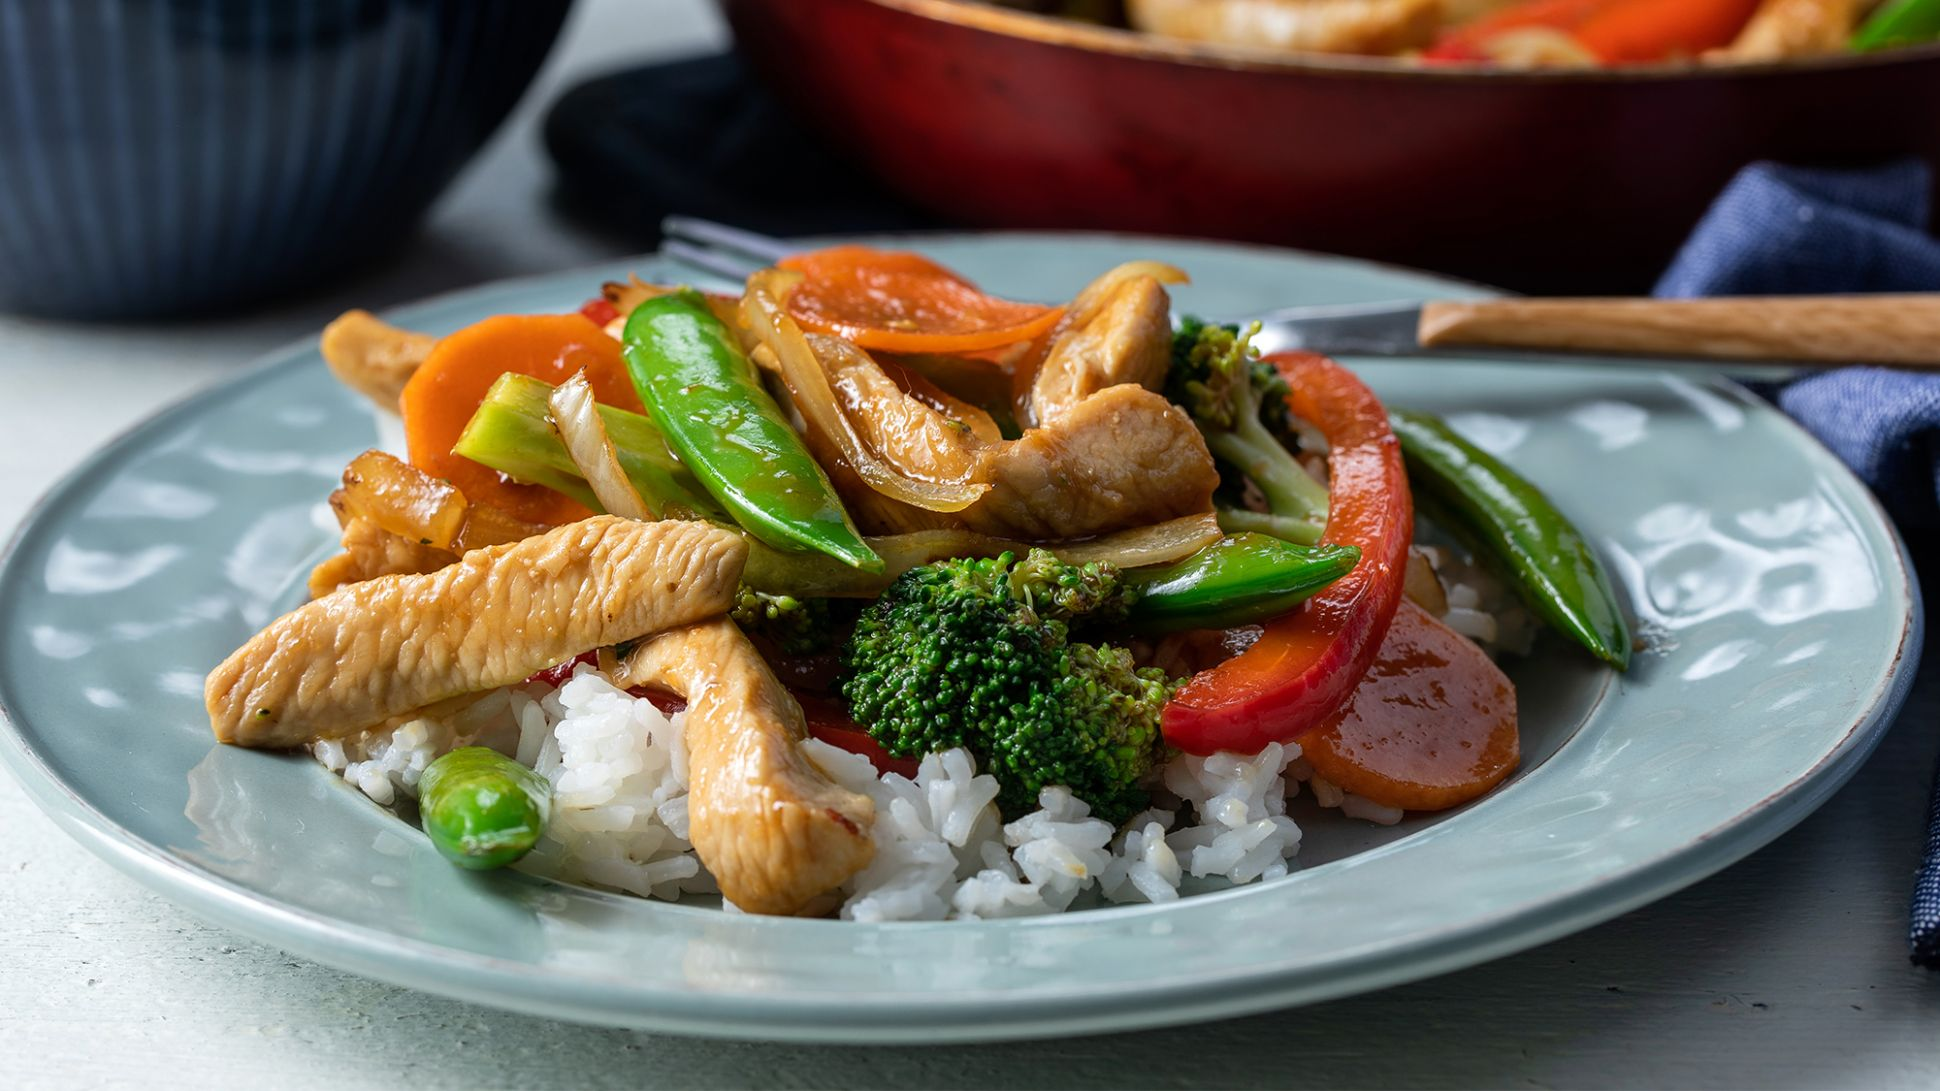 Chicken and Vegetable Stir-Fry - Recipes Chicken Vegetable Stir Fry